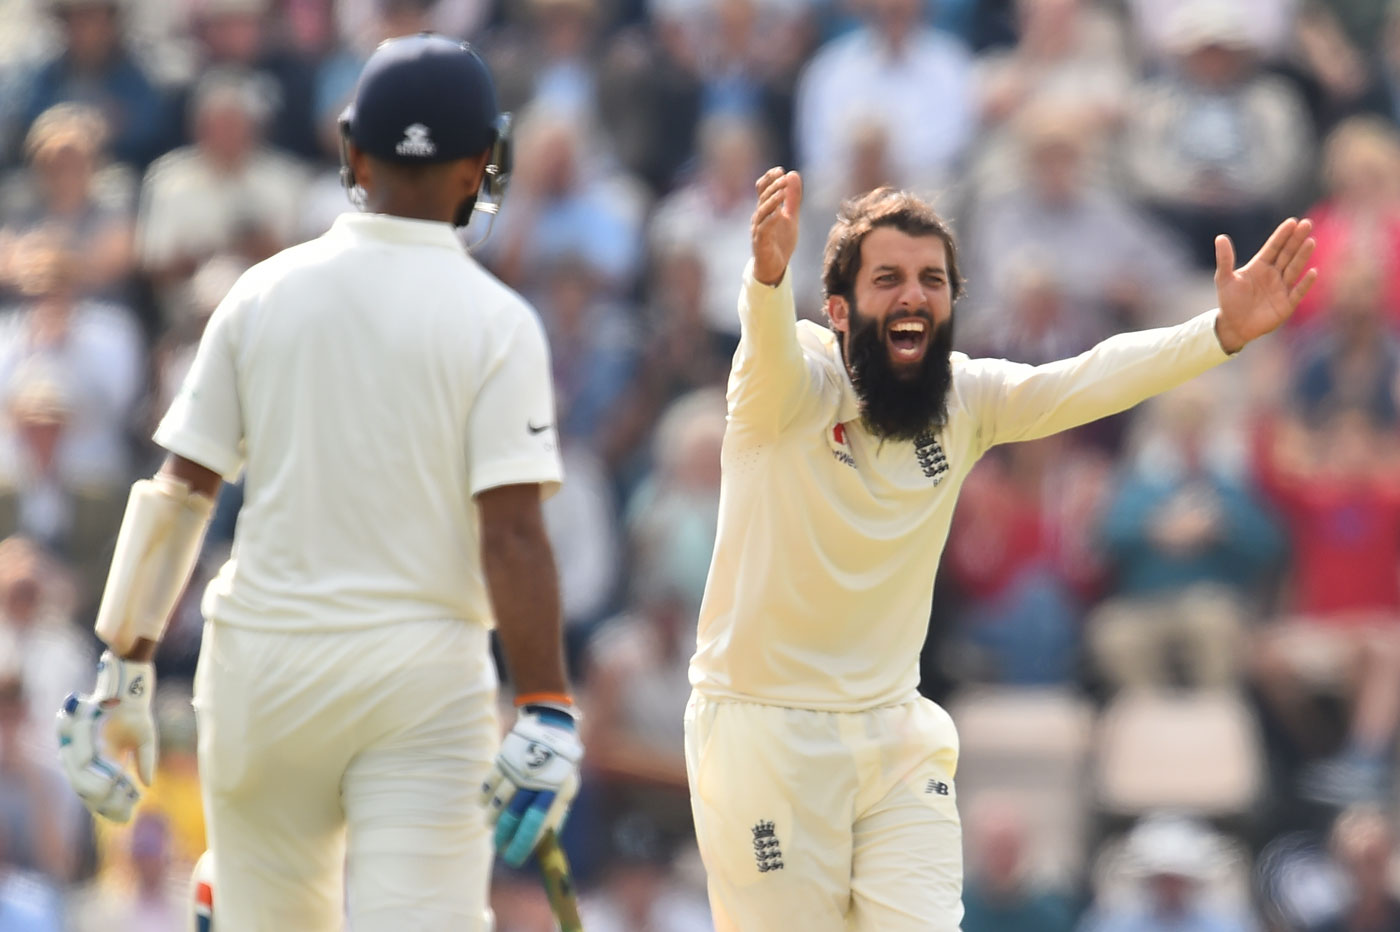 ENG vs IND 2018: R Ashwin Was Fit, Says Ravi Shastri After Spinner's Woeful Performance In Southampton